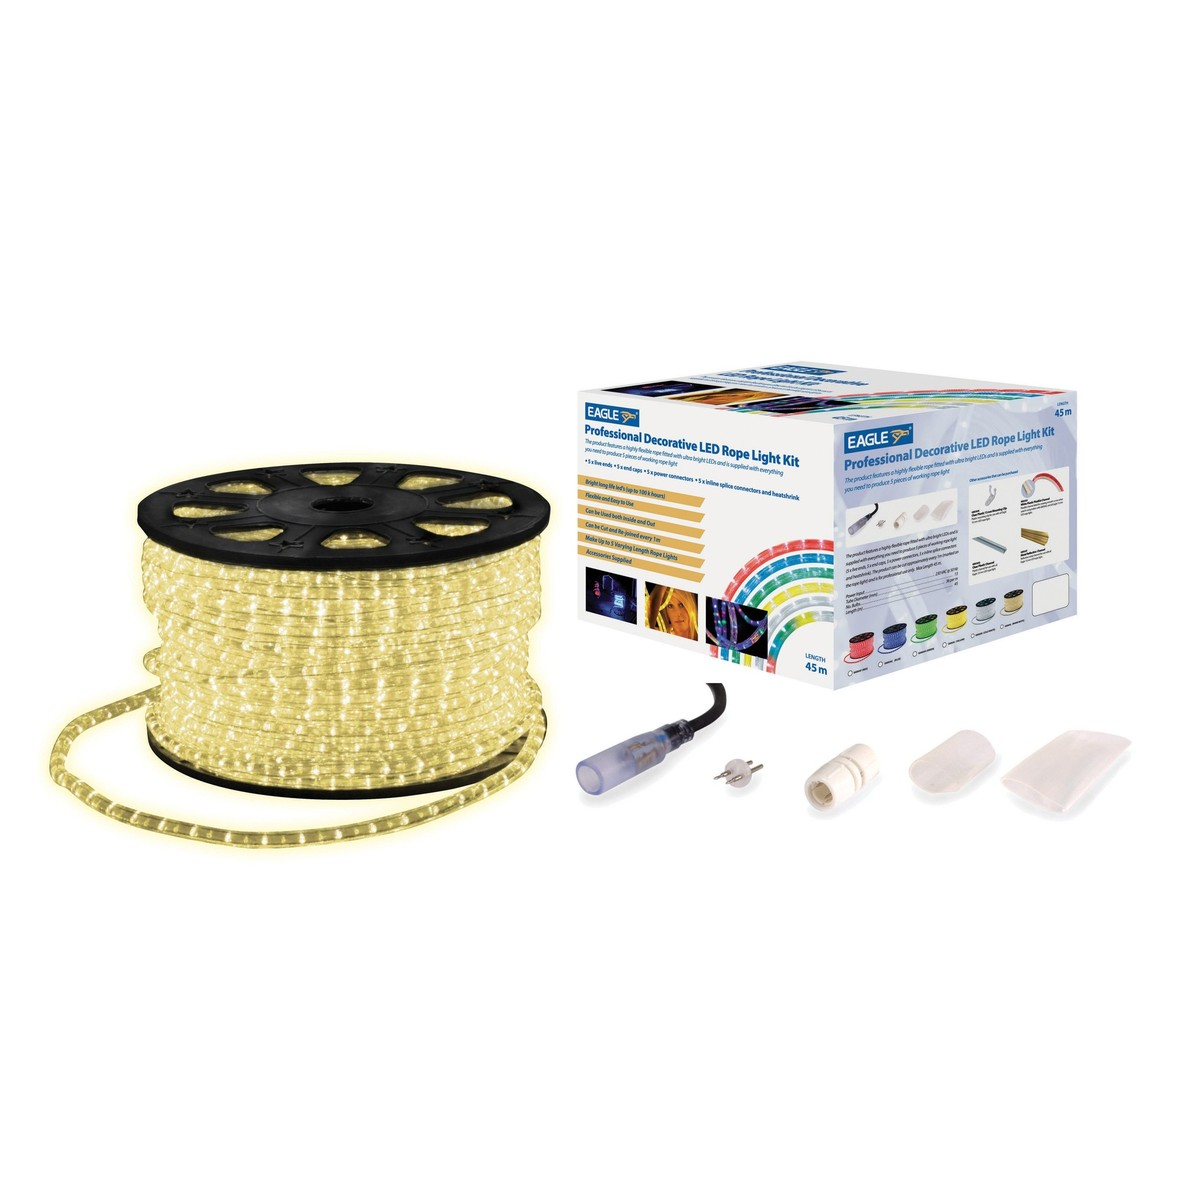 Eagle static led rope light with accessories kit 45m warm white at eagle static led rope light with wiring accessories kit 45m warm white loading zoom aloadofball Choice Image